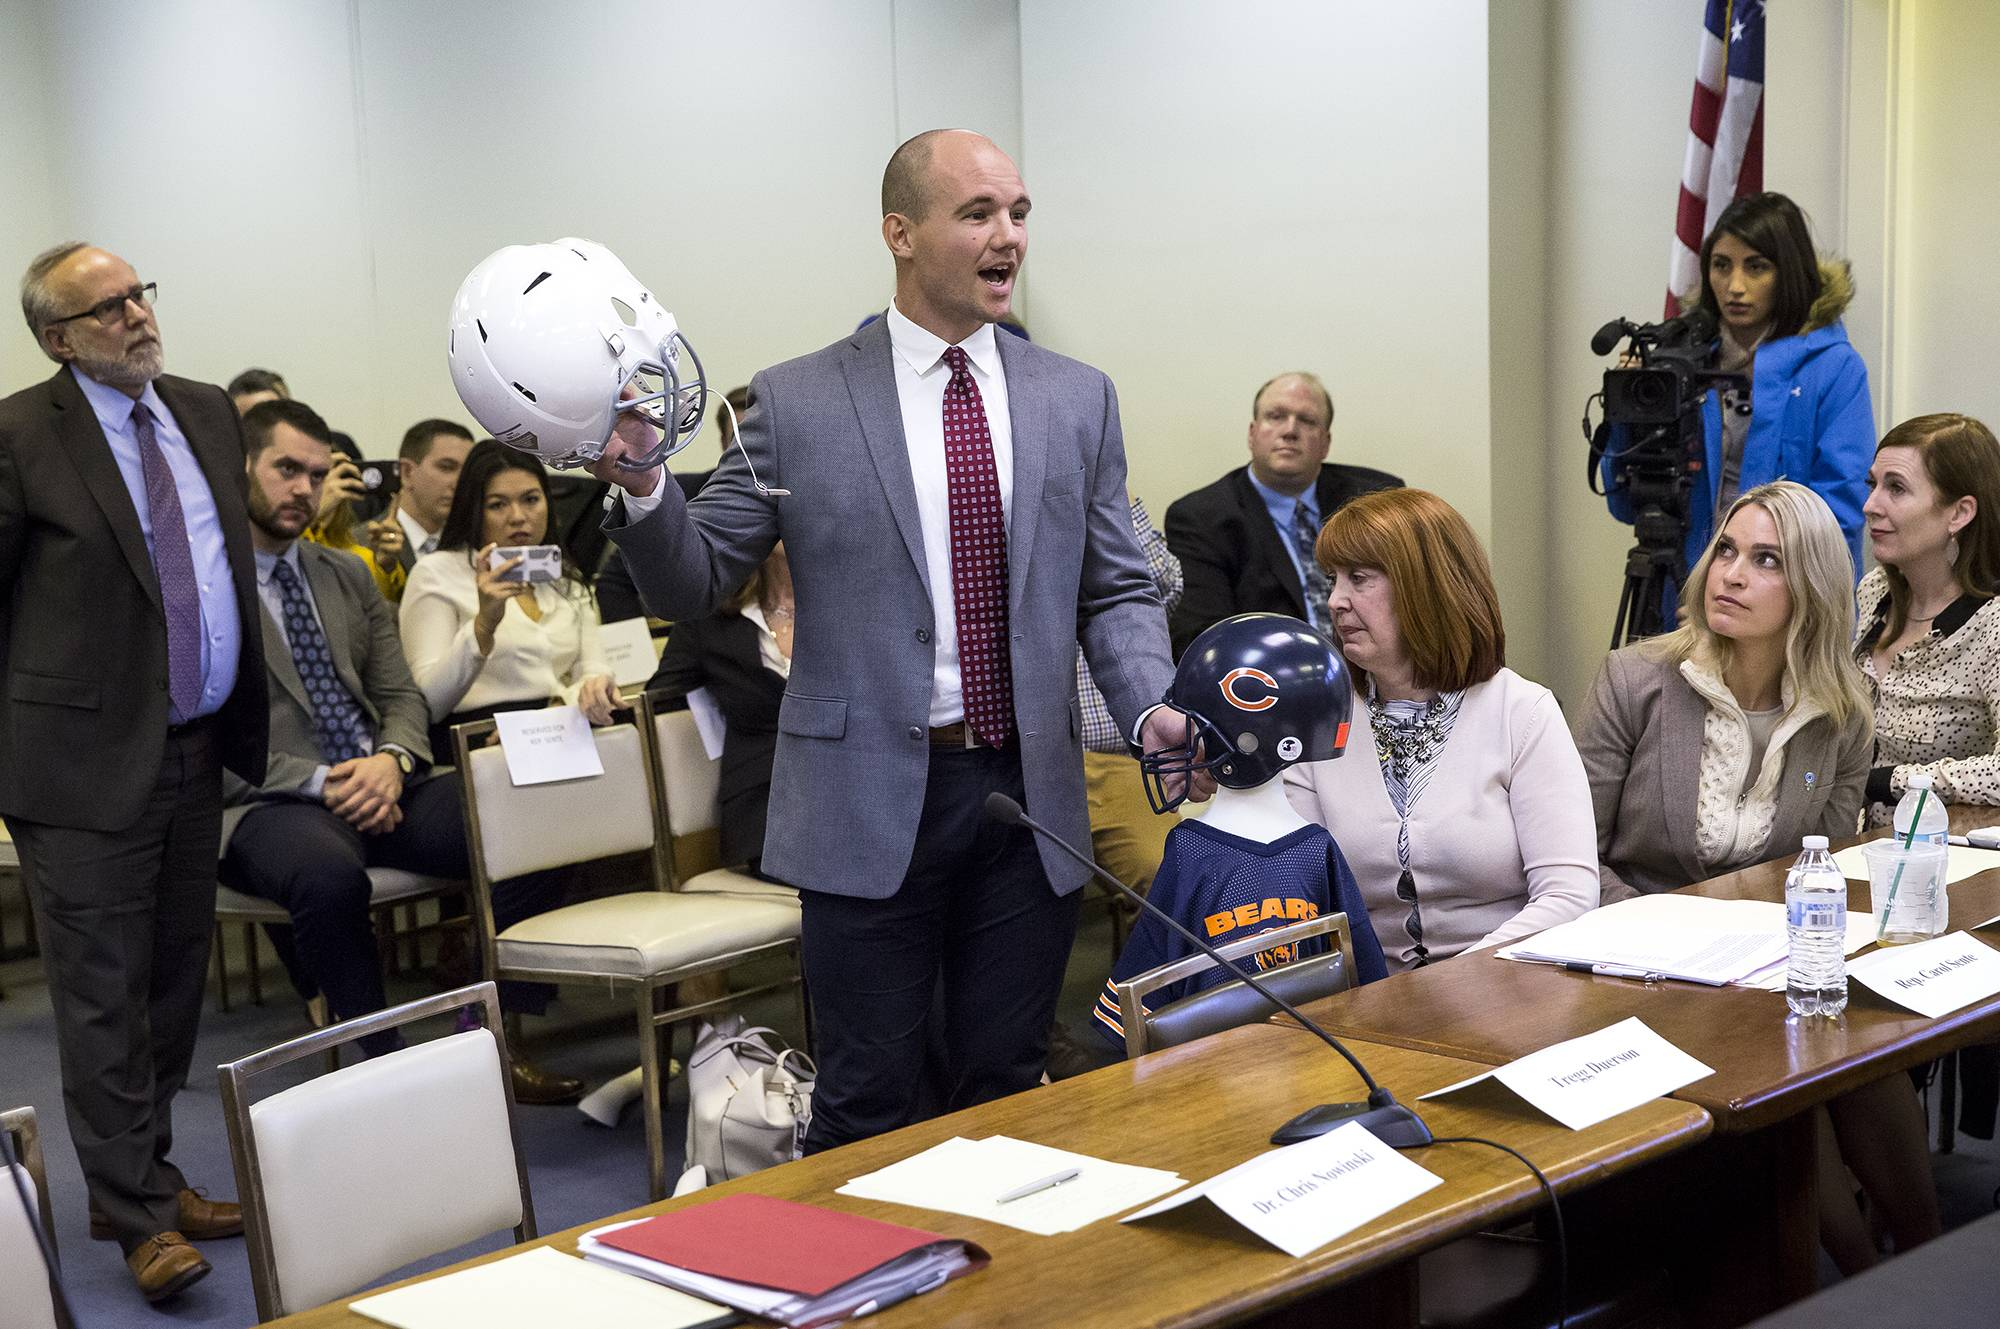 Join debate of bill banning preteens from tackle football